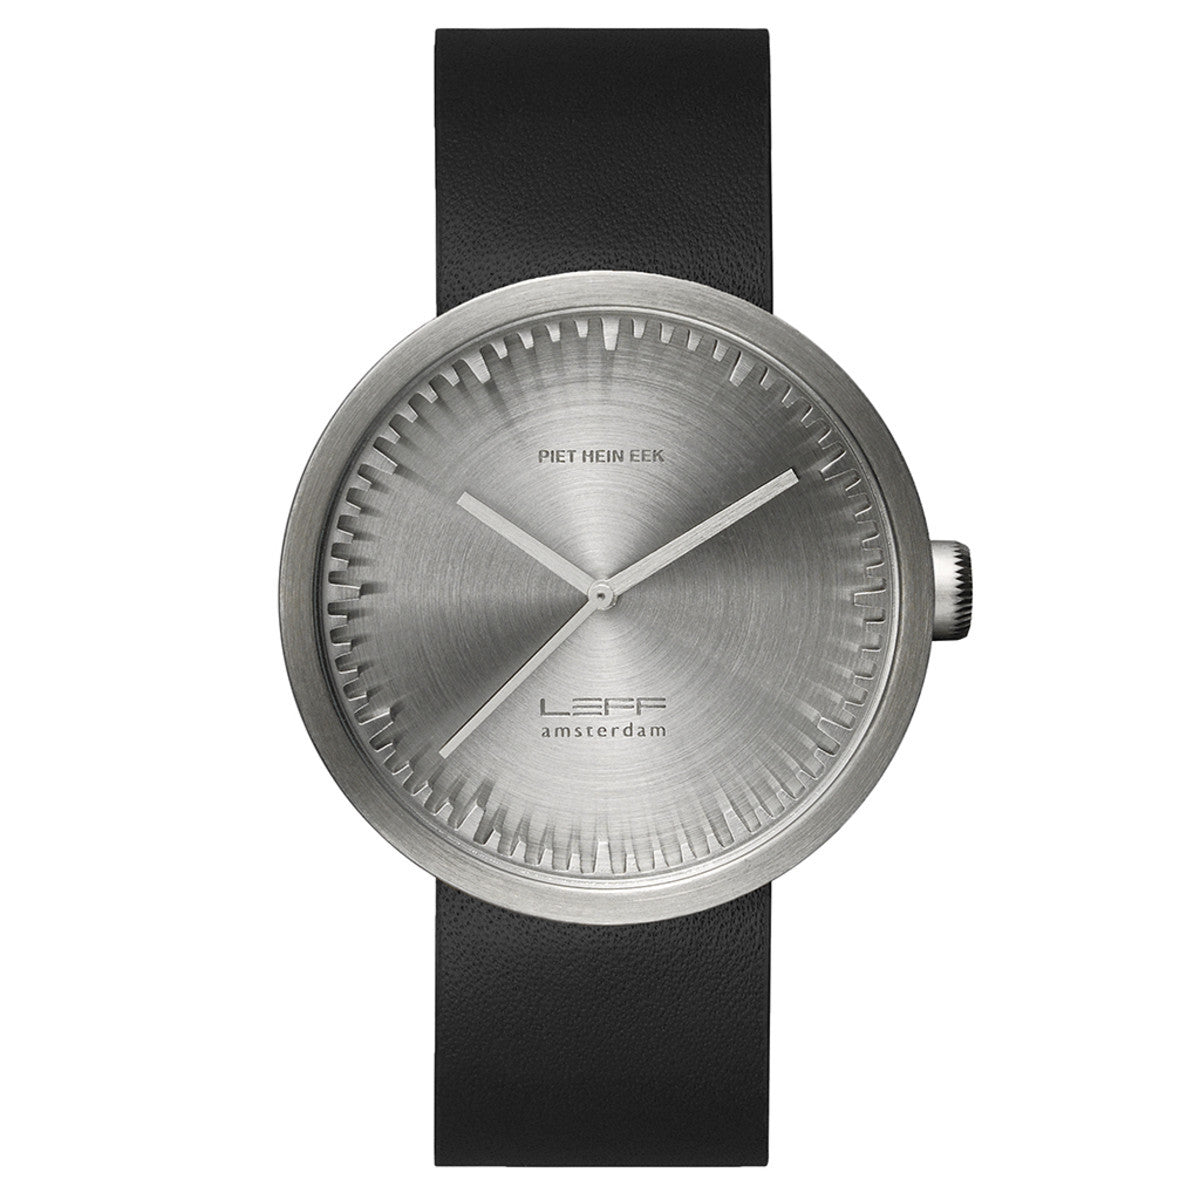 LEFF Amsterdam Tube Watch D42 With Black Leather Strap